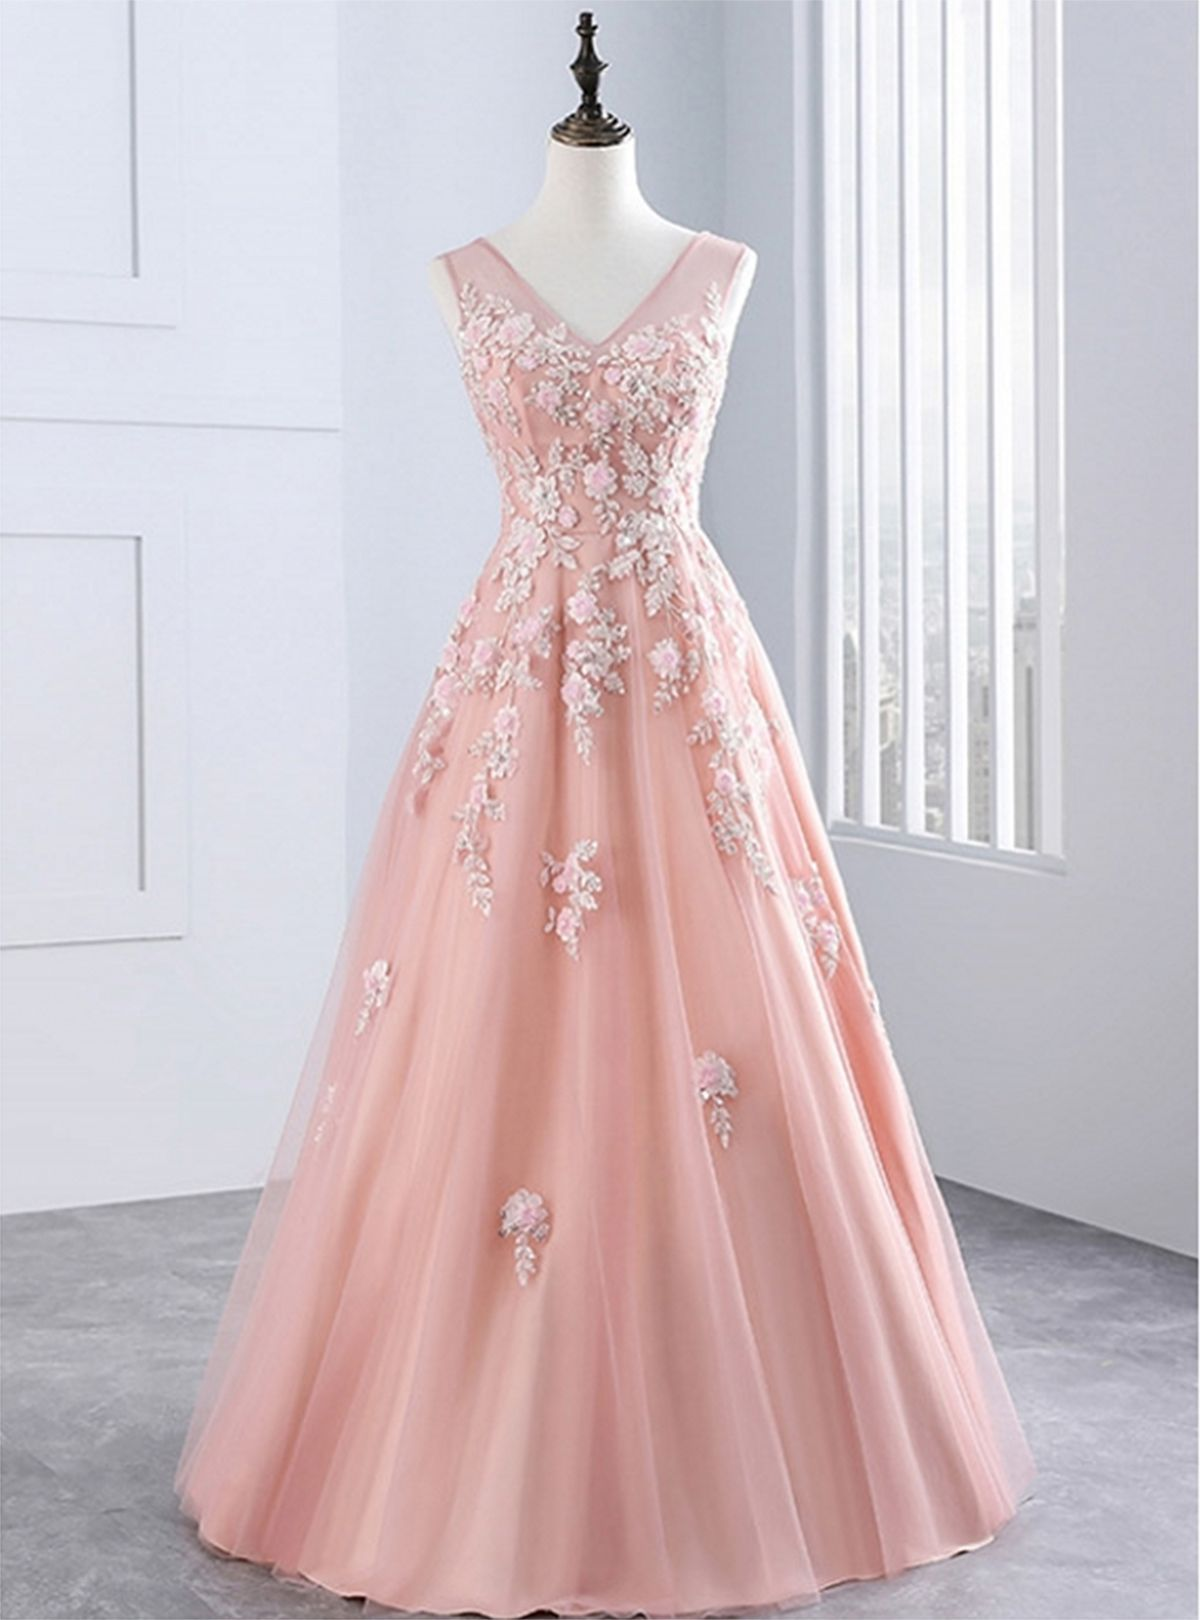 Sweet dresses cute pink tulle senior prom dress with lace